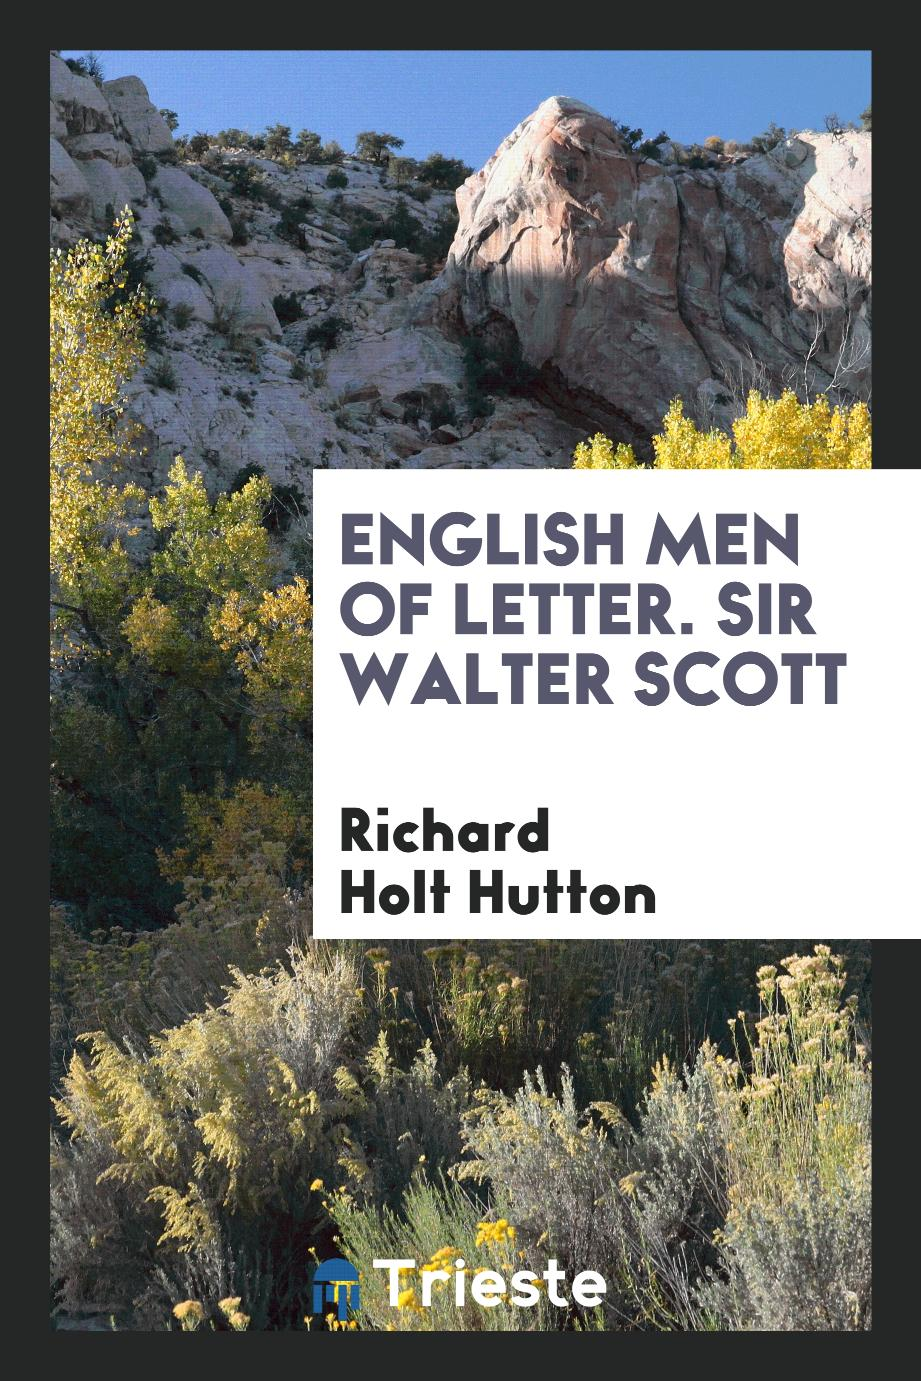 English men of letter. Sir Walter Scott